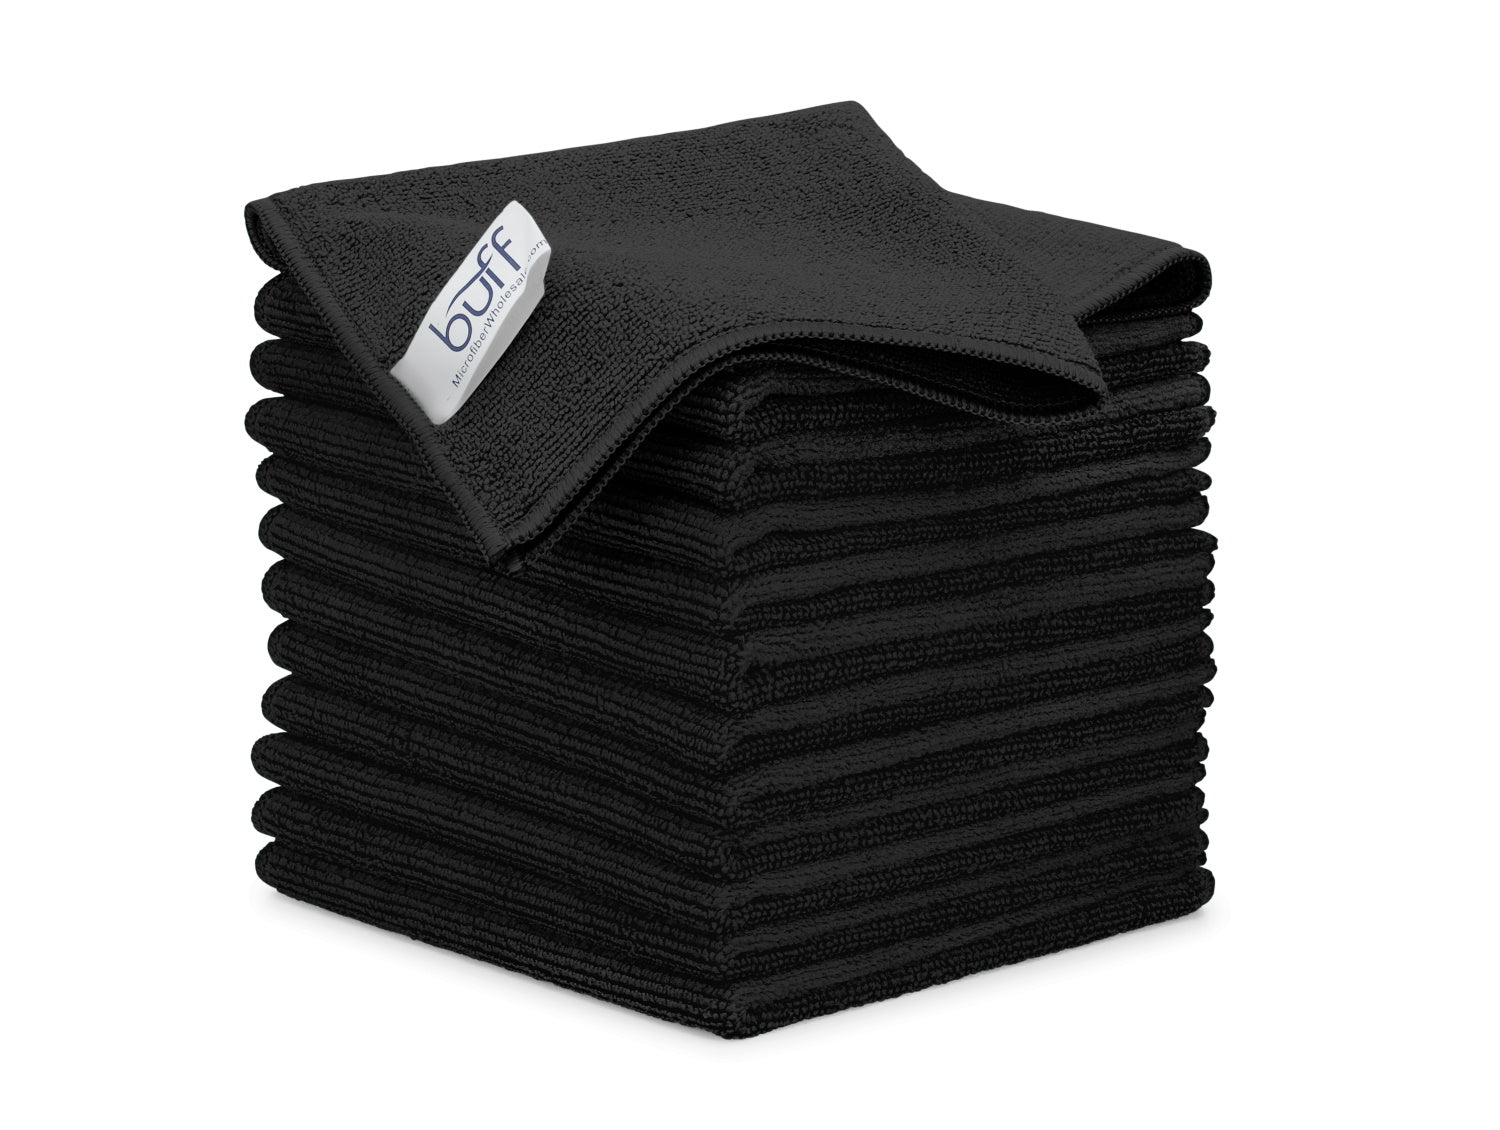 Black Microfiber Cleaning Cloths 12 Pack